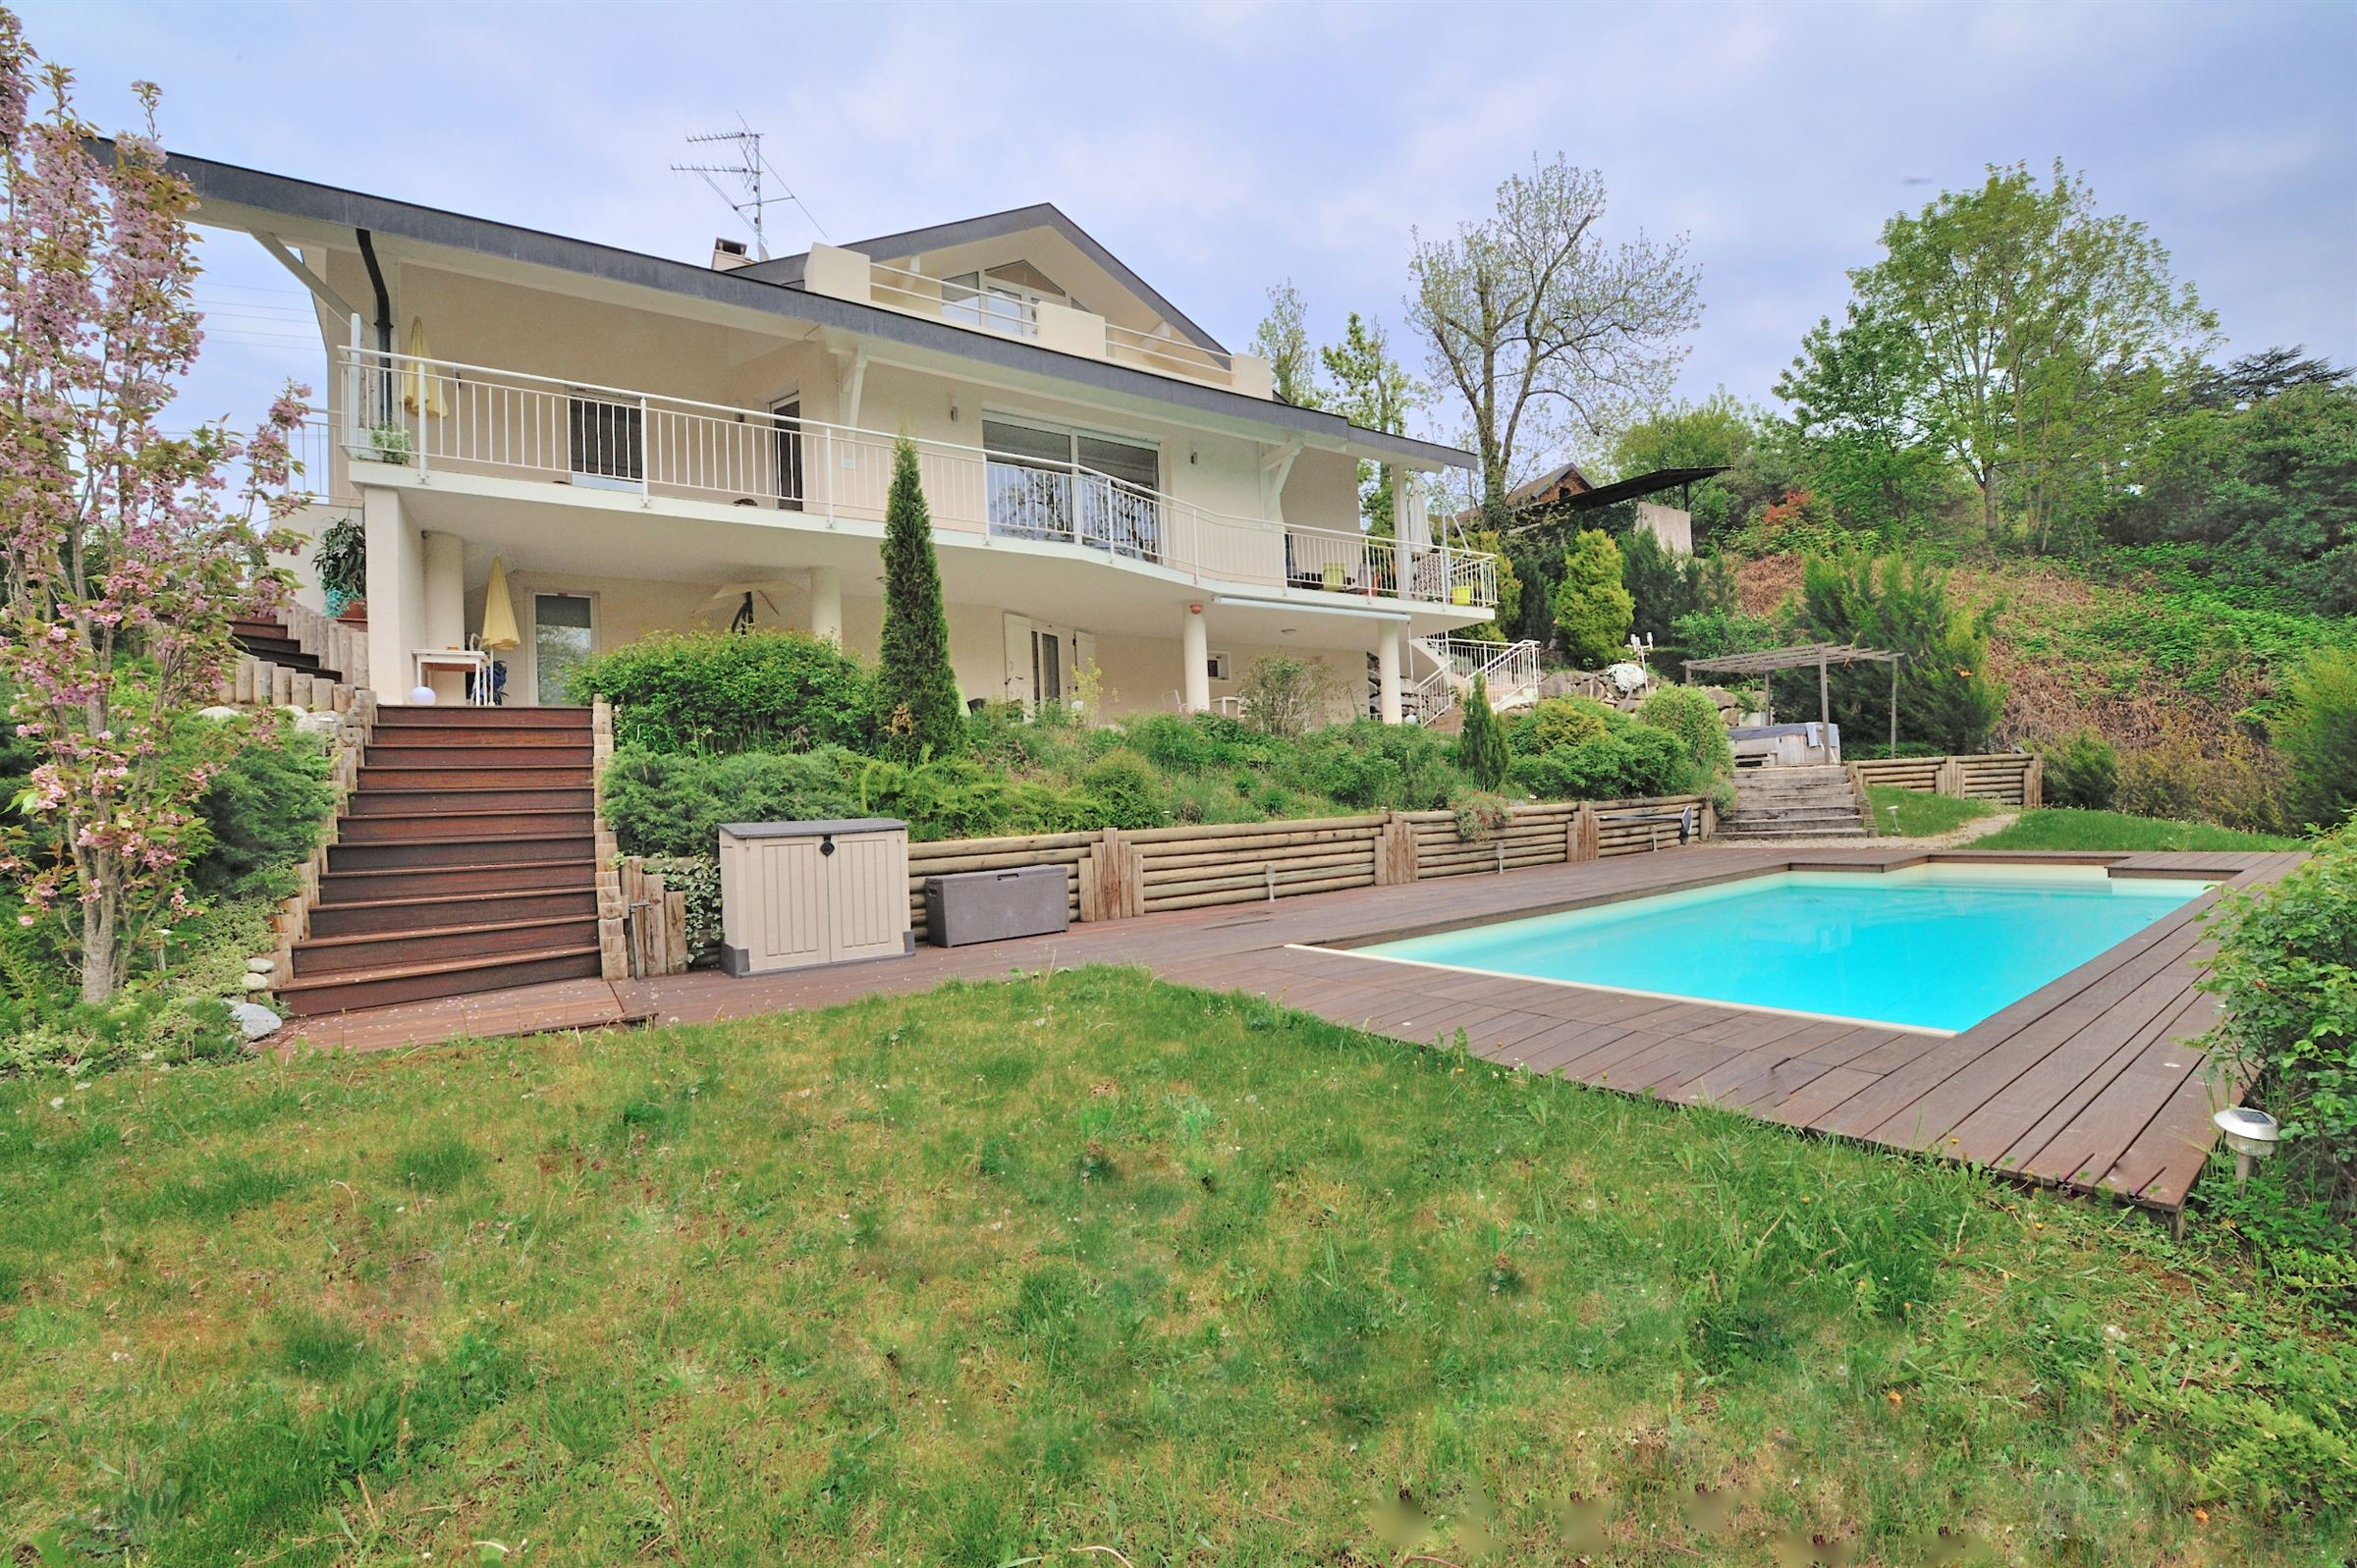 Single Family Home for Sale at House Gaillard, Rhone-Alpes, 74240 France